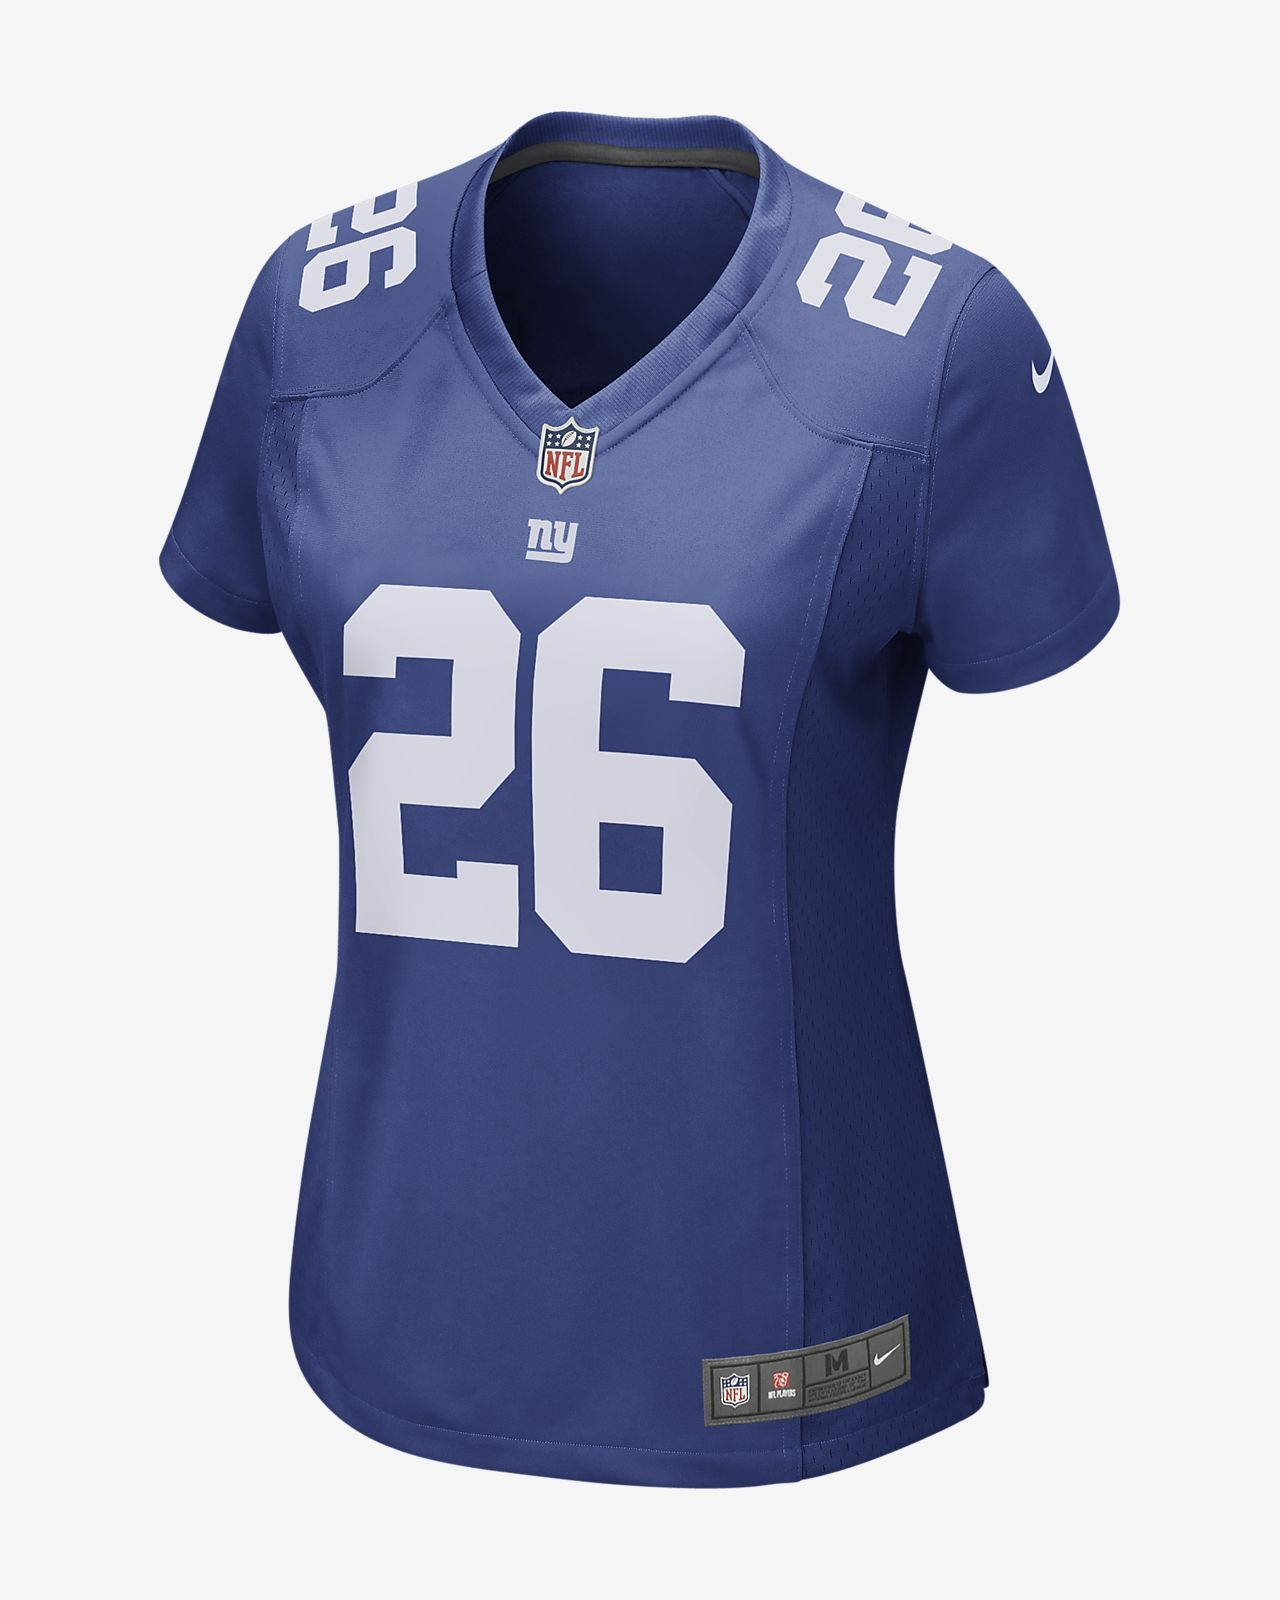 166221de0f2 NFL New York Giants (Saquon Barkley) Women's Game Football Jersey ...